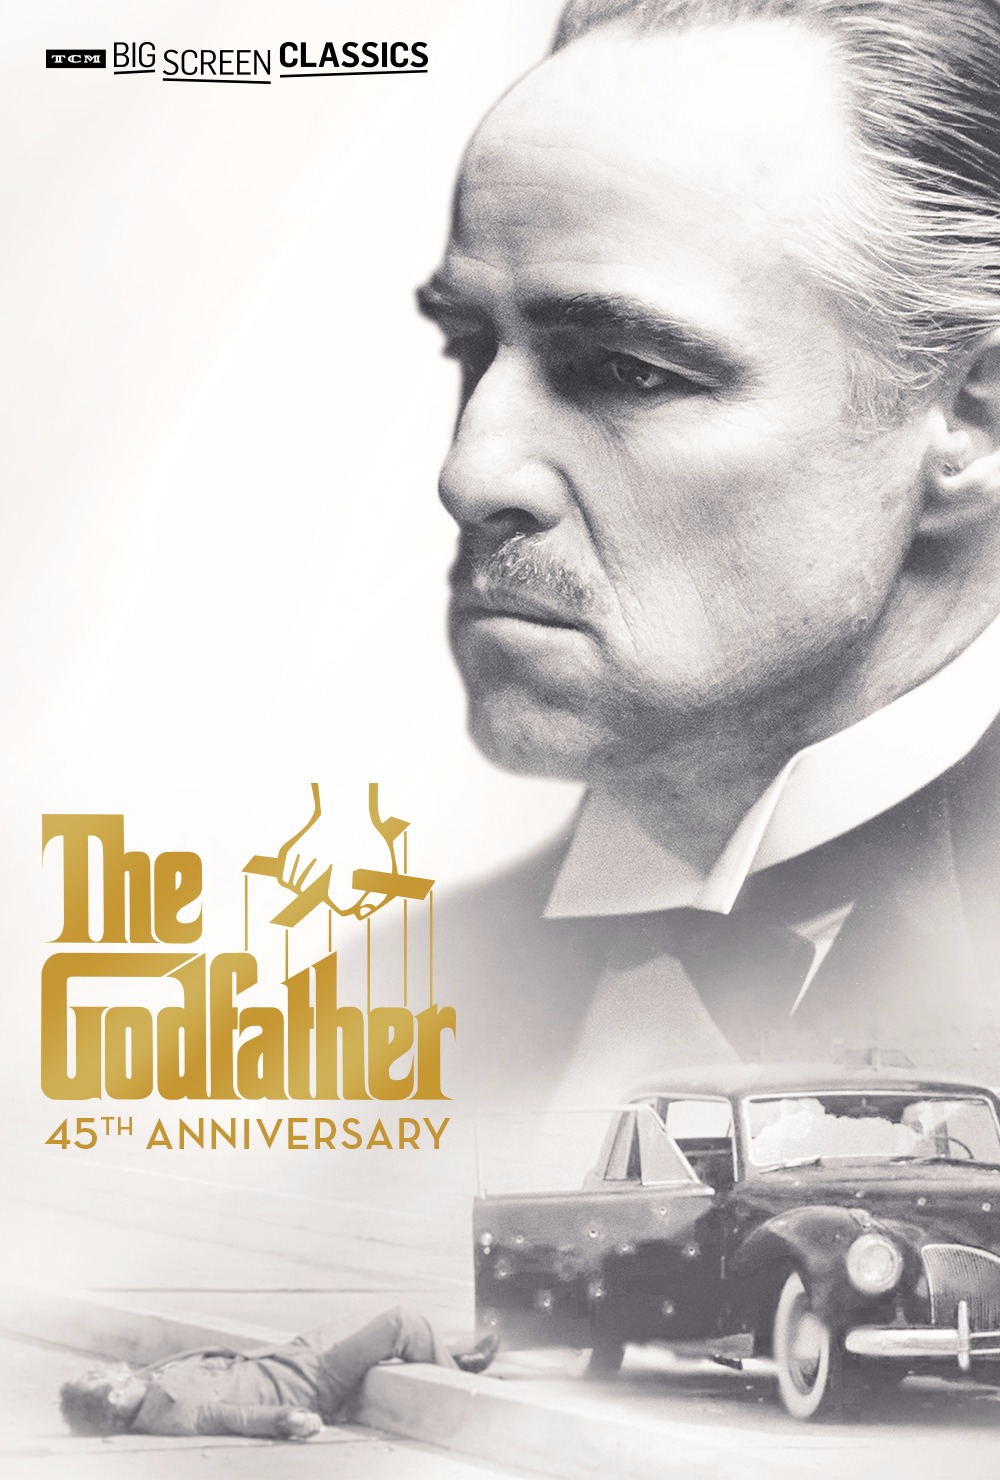 http://rozup.ir/view/2309810/godfather-poster-UPDATED.jpg